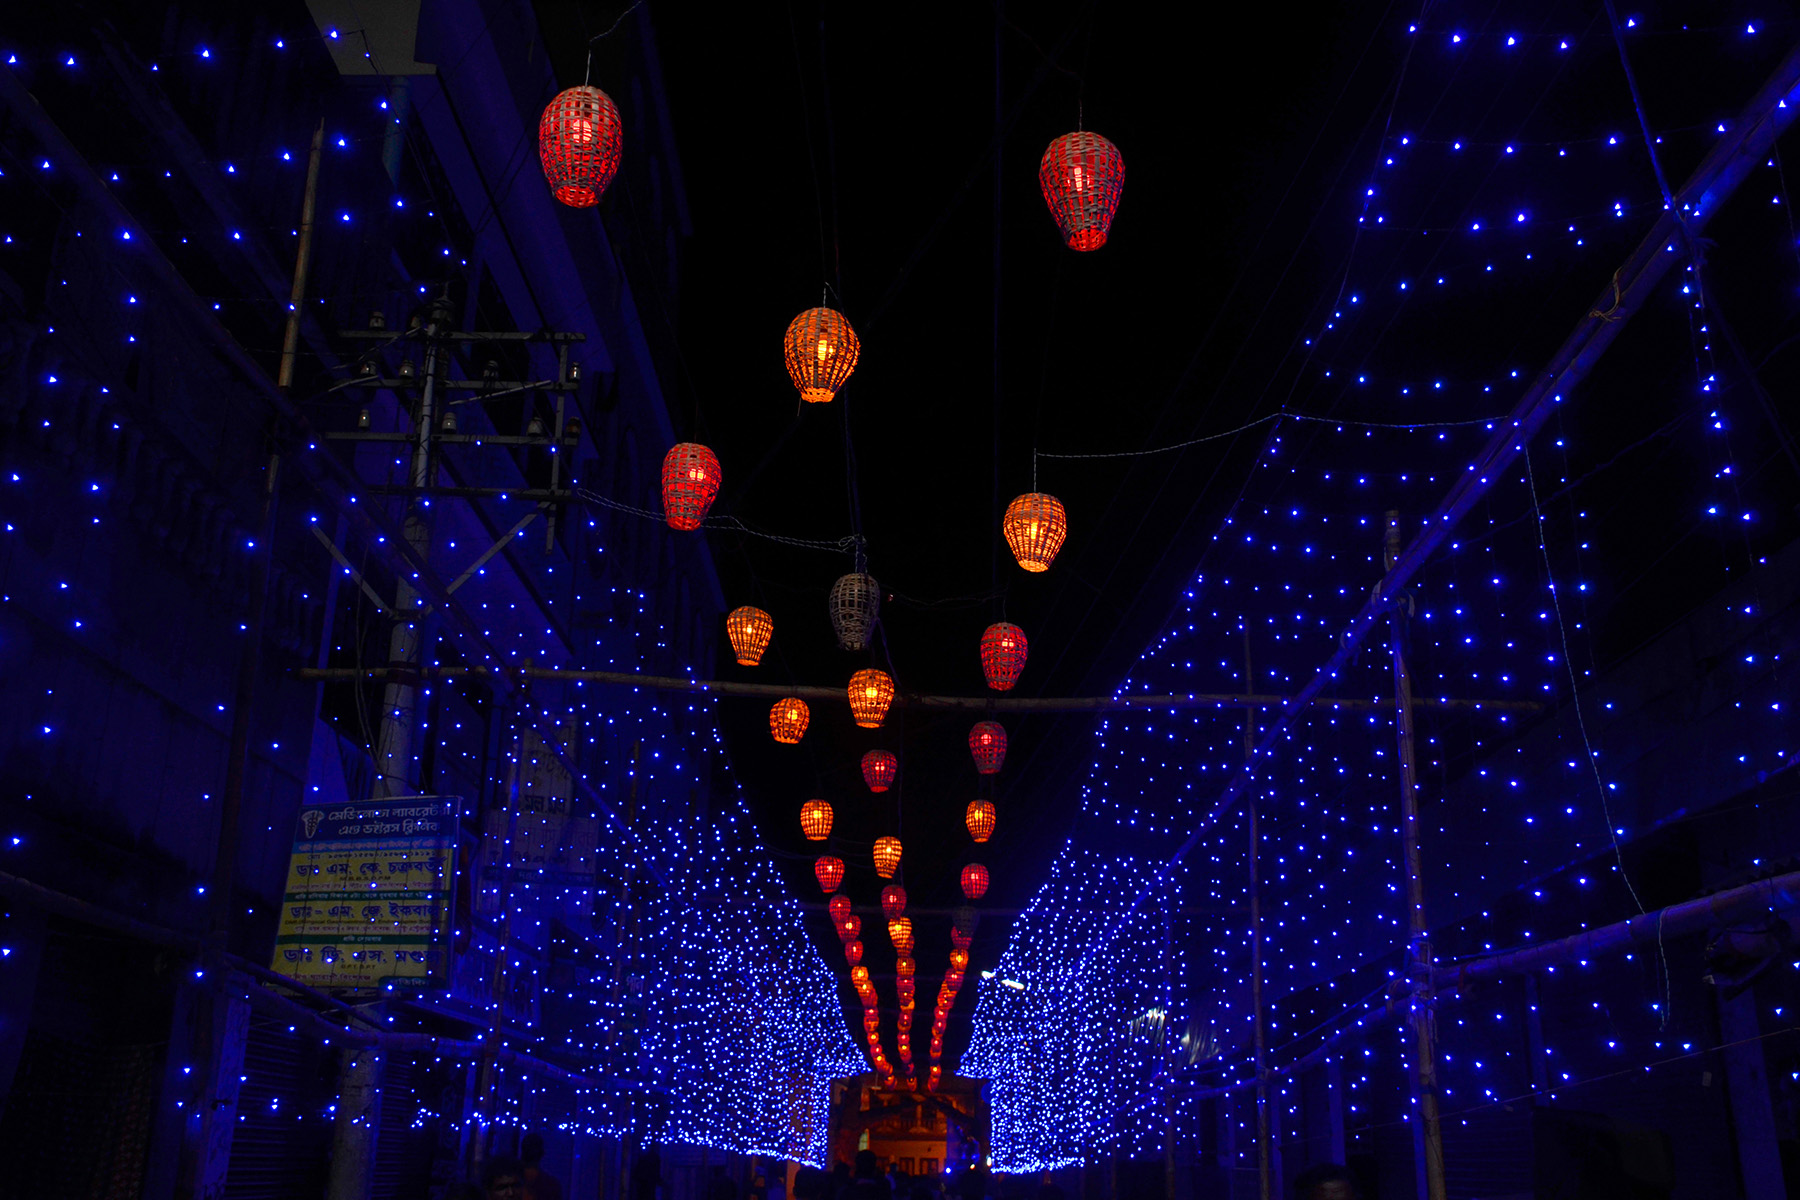 In dark night, the twinkling of blue stars with globe light show the path very nicely.